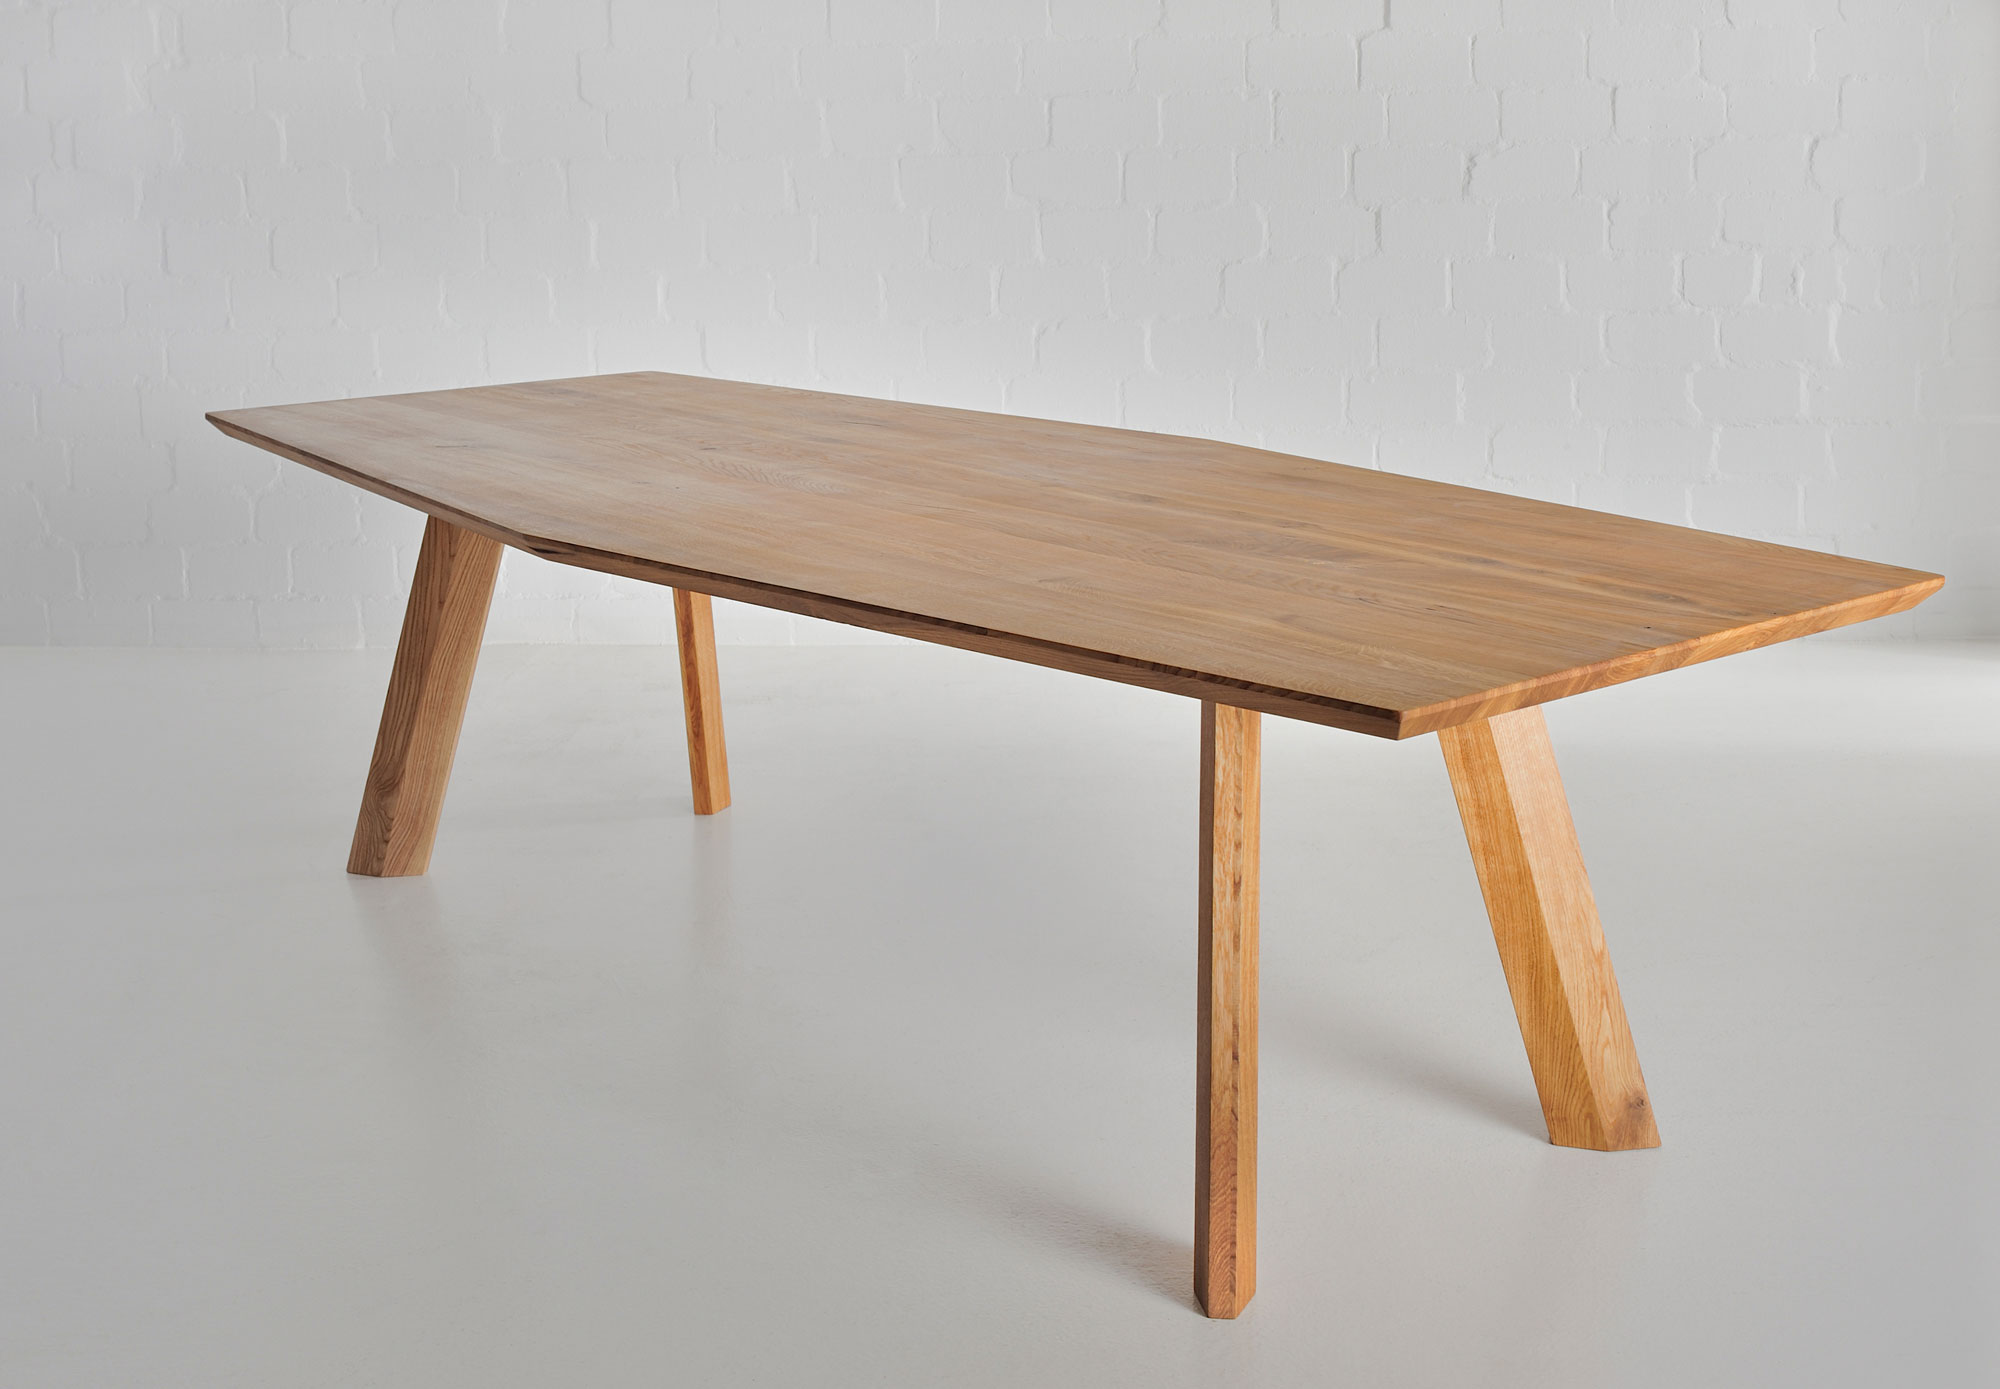 Designer Dining Table RHOMBI a custom made in solid wood by vitamin design